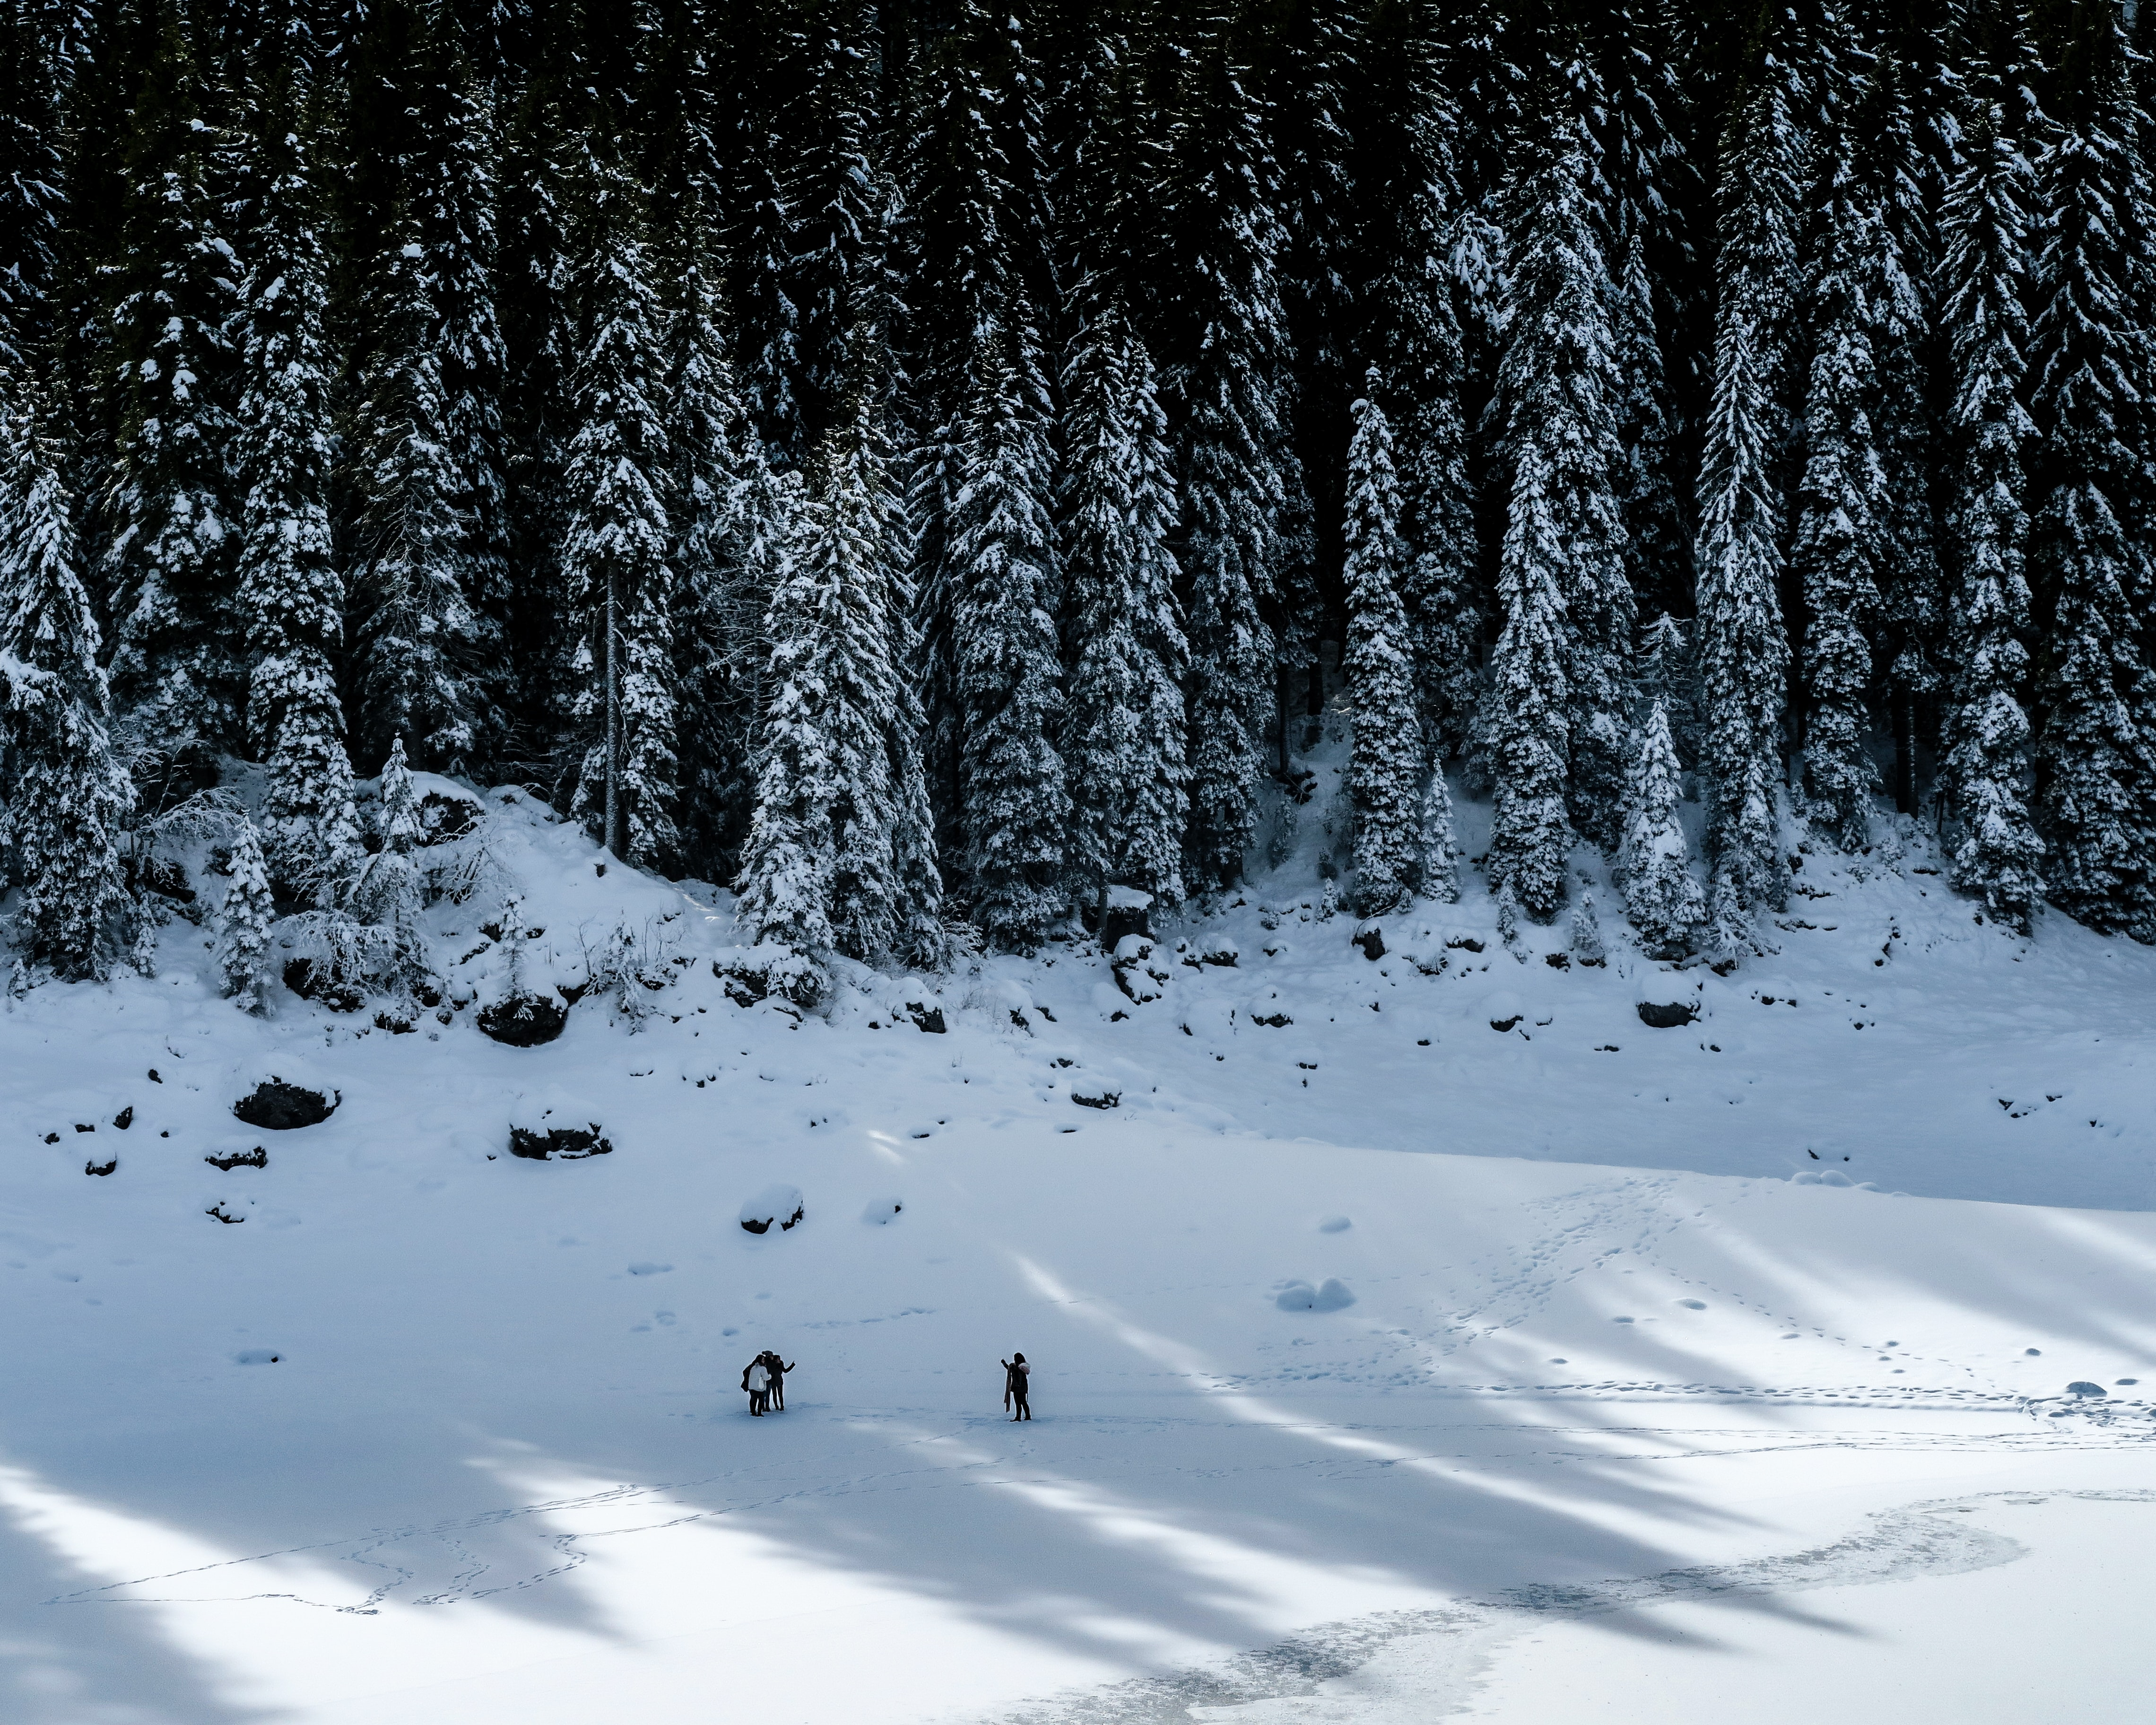 green trees covered by snow